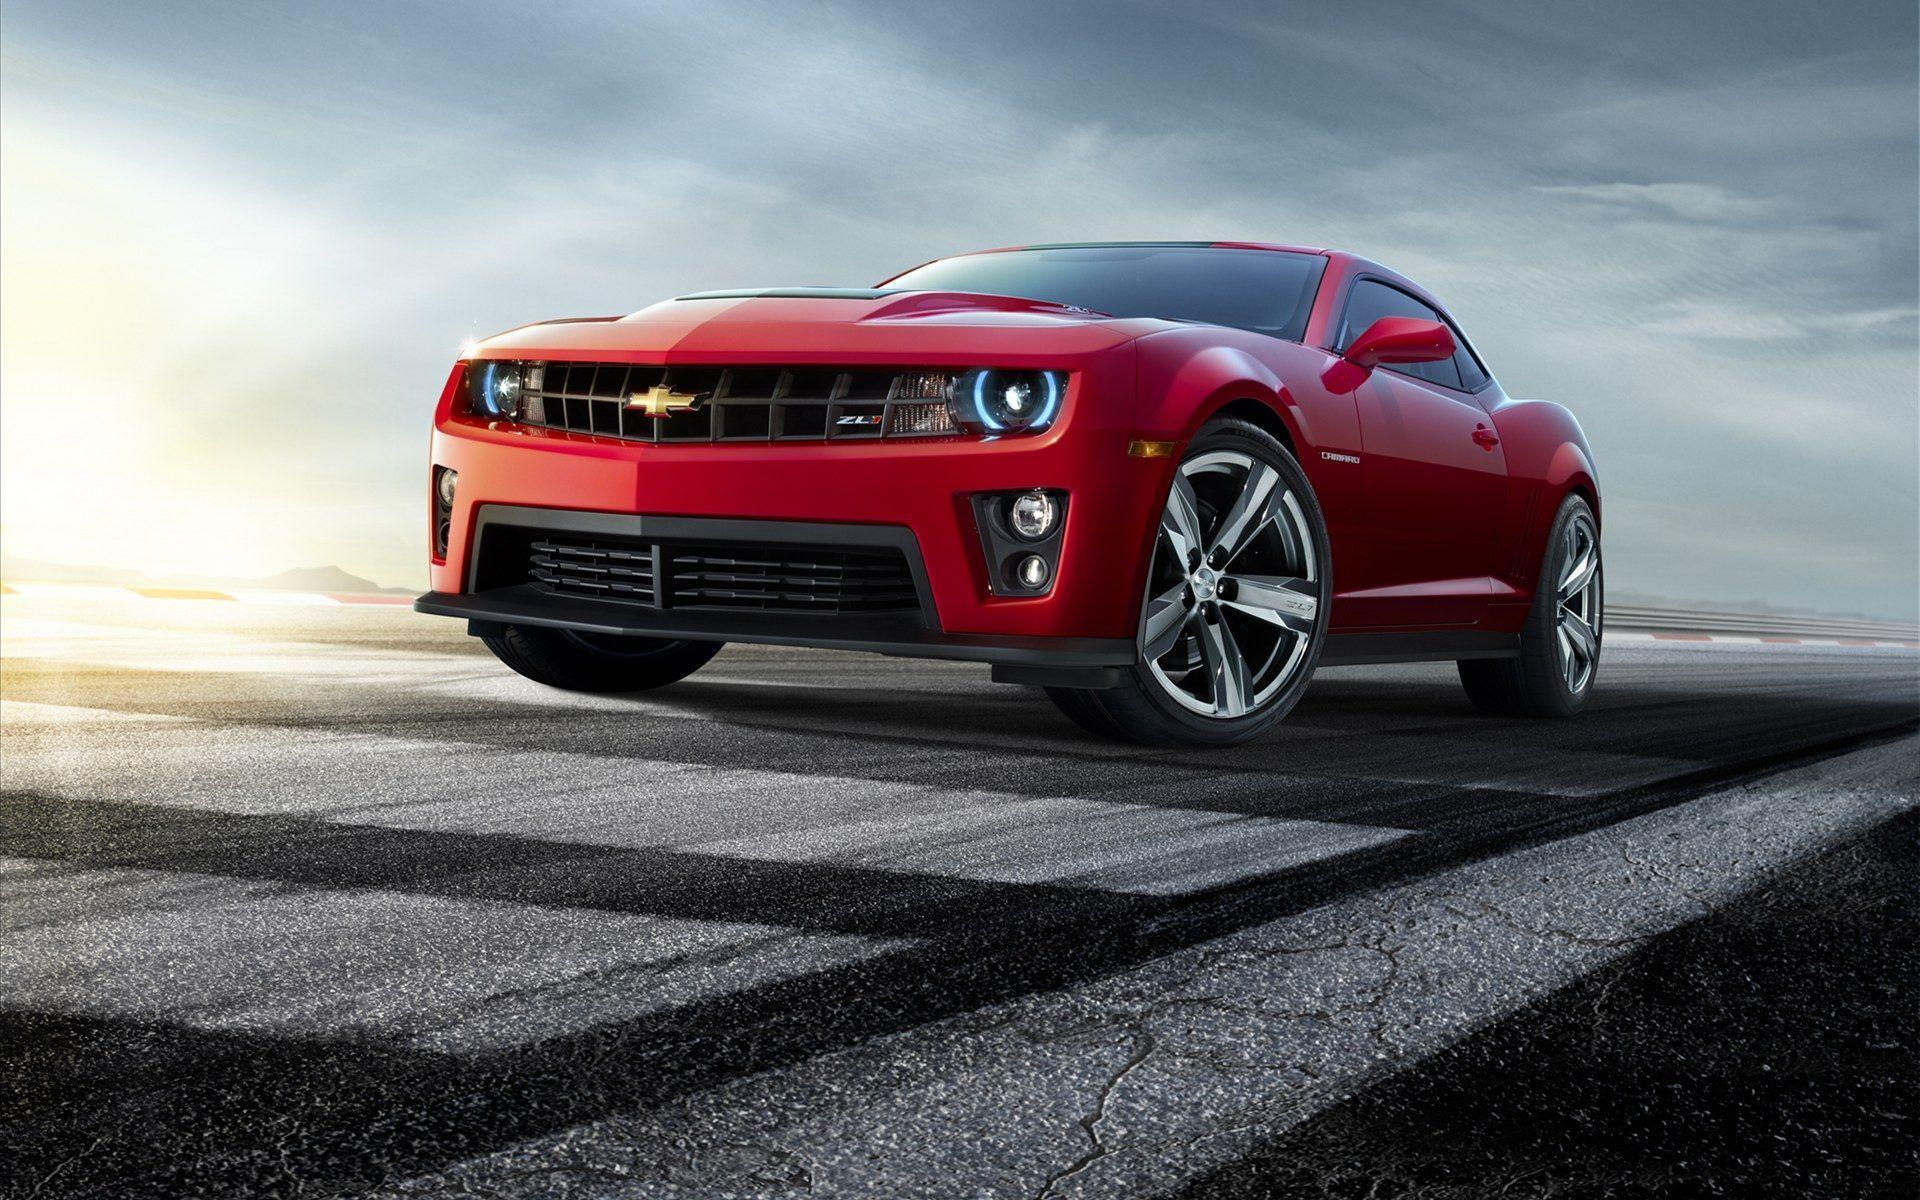 Chevrolet Camaro Wallpapers Wallpaper Cave